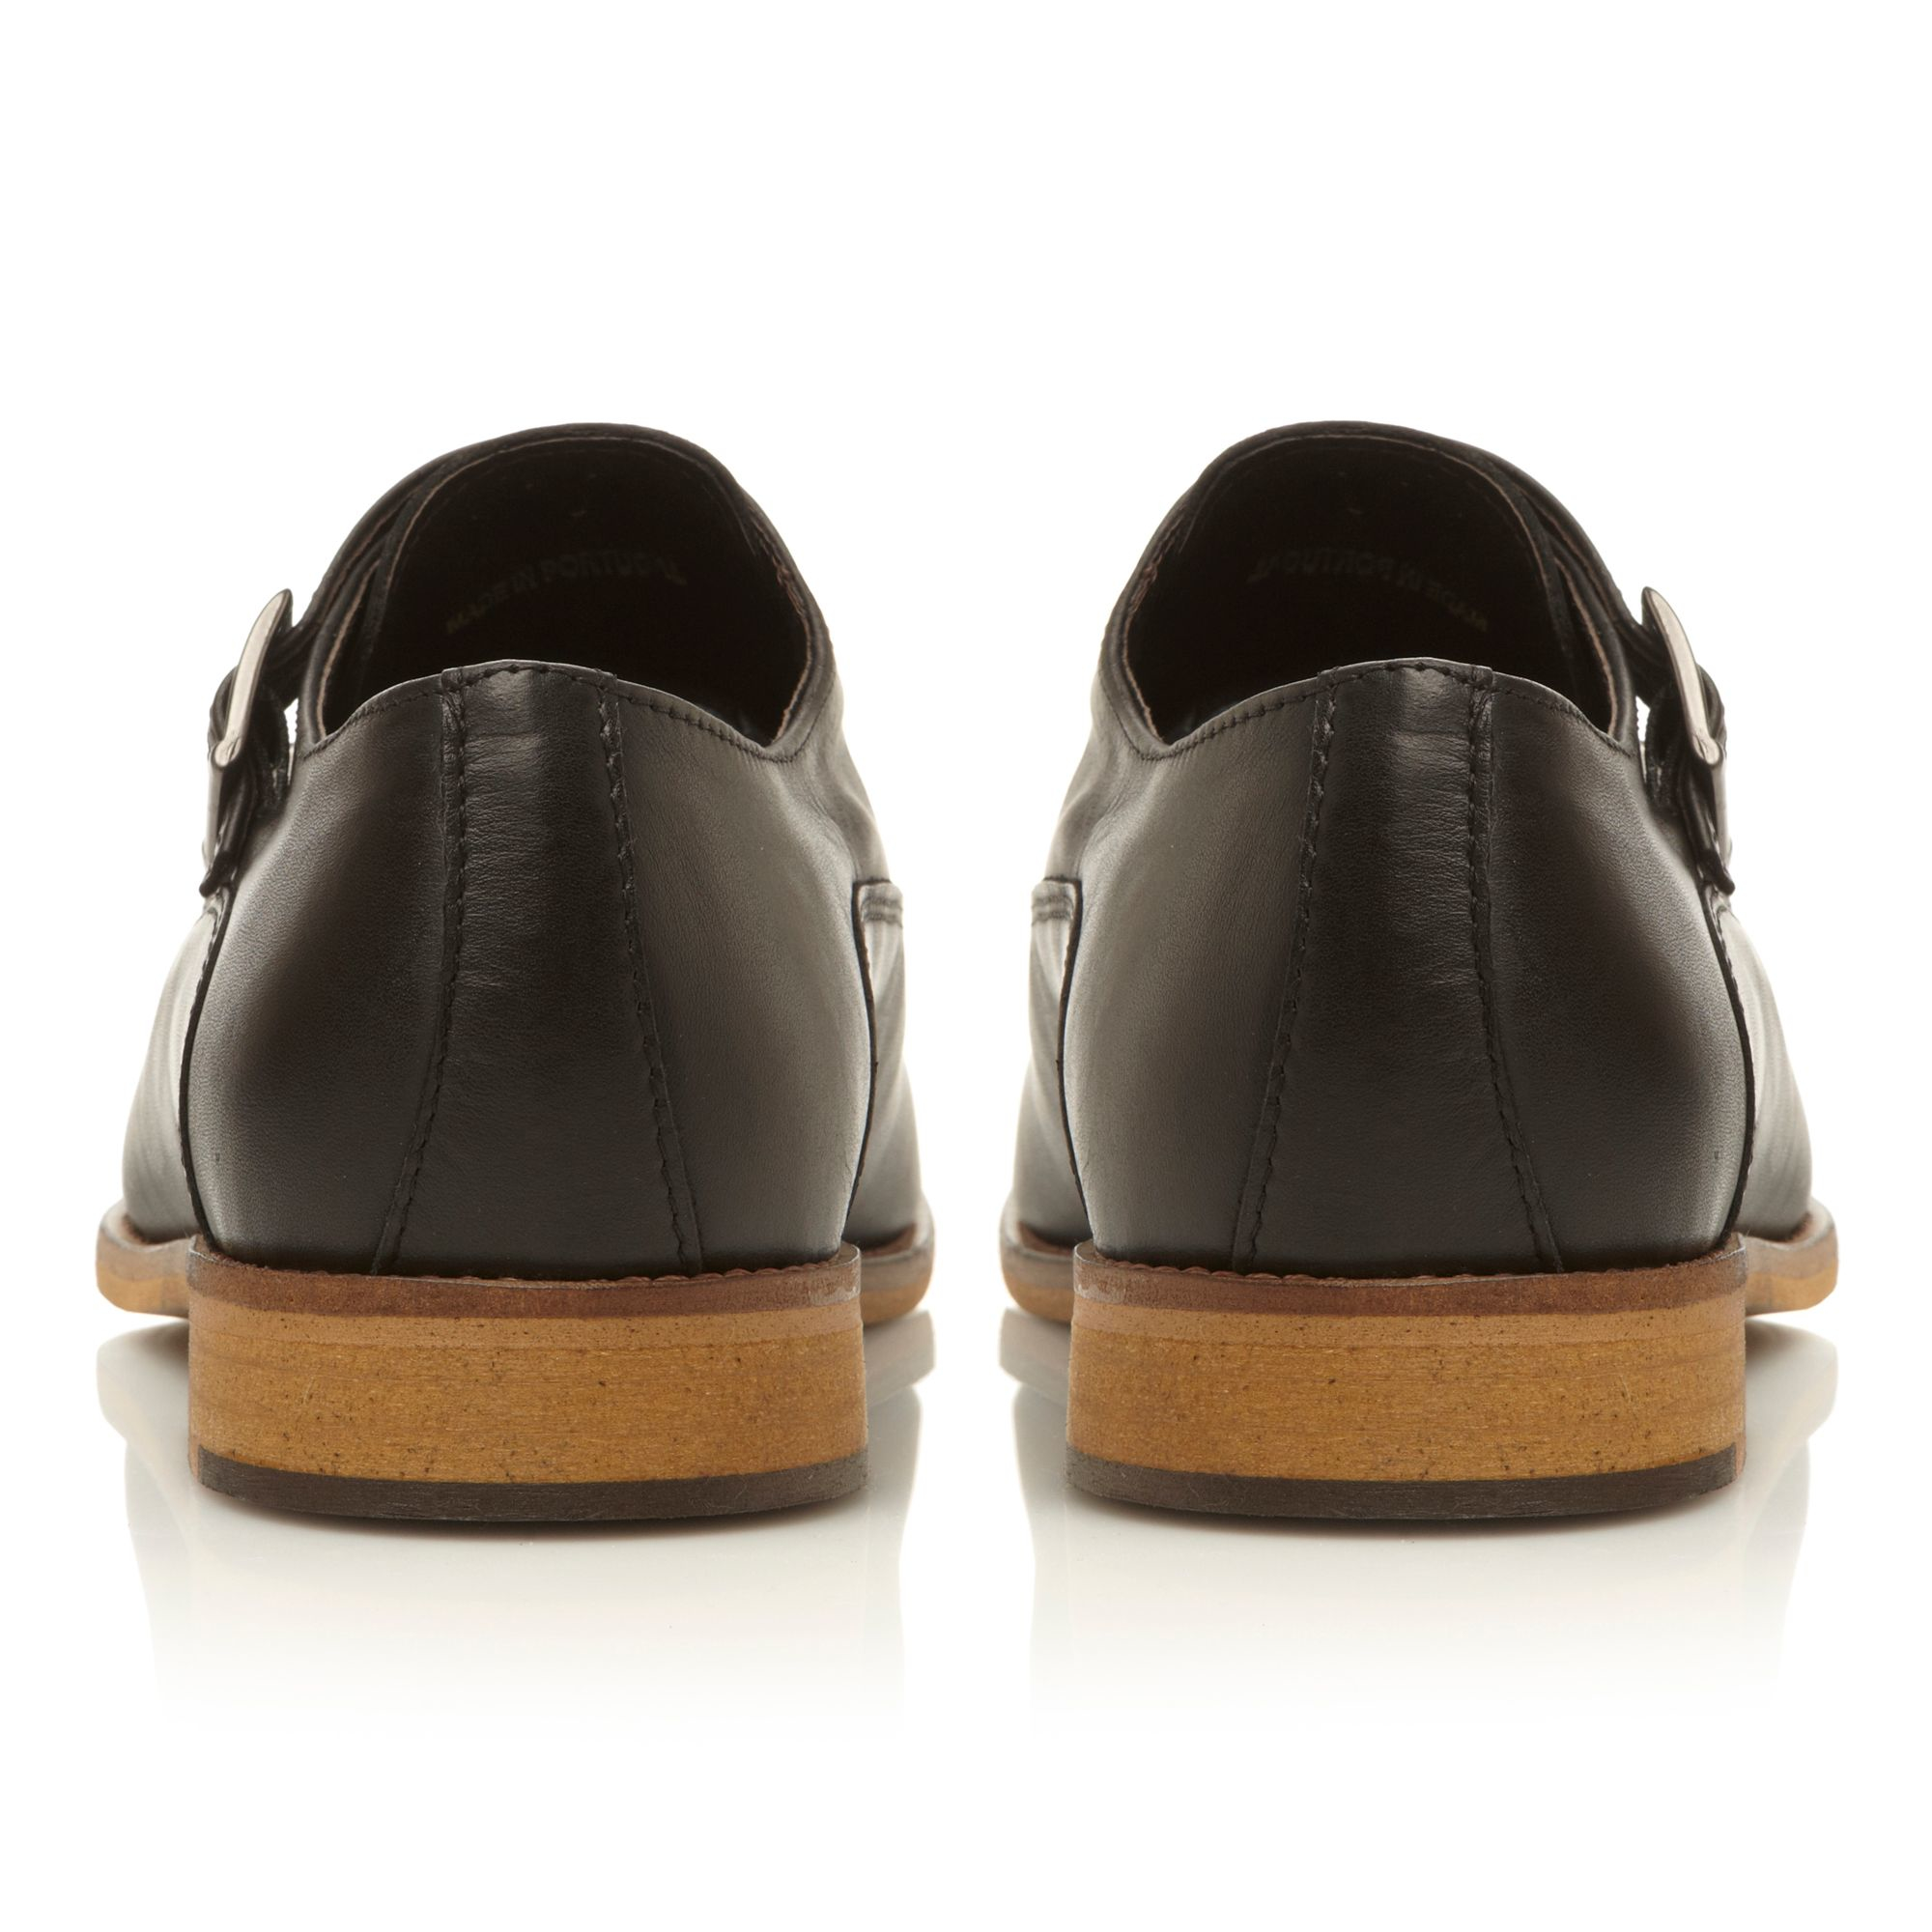 Bertie Abseil Double Buckle Leather Monk Shoe in Black Leather (Black) for Men